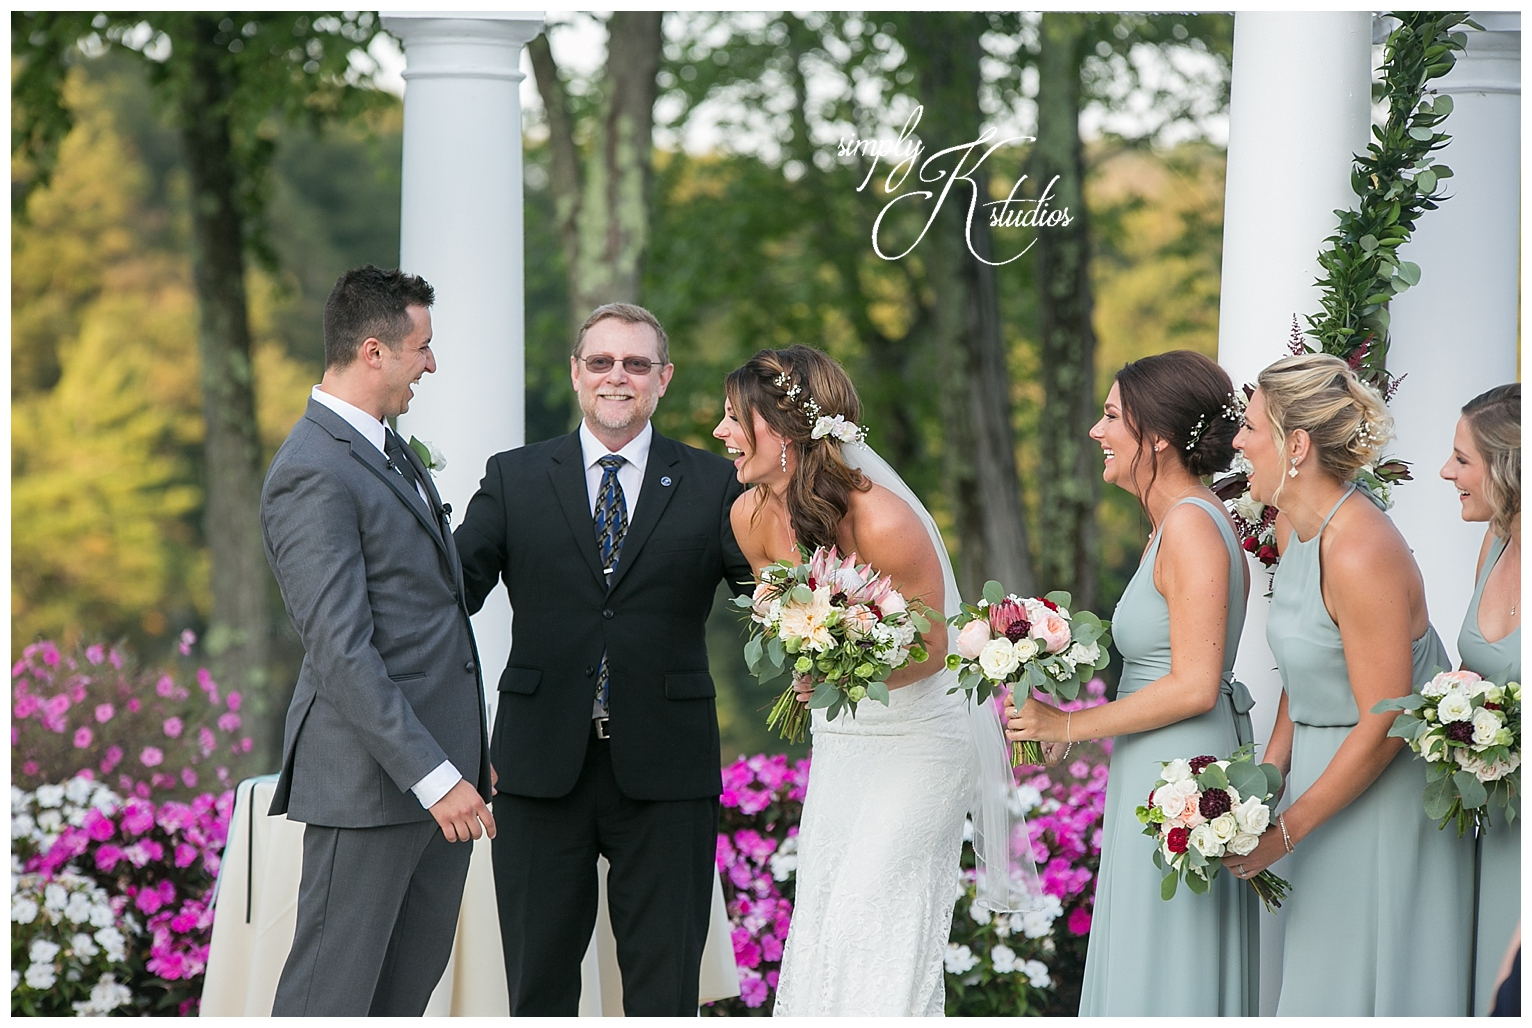 Wedding Ceremony Locations in Connecticut.jpg